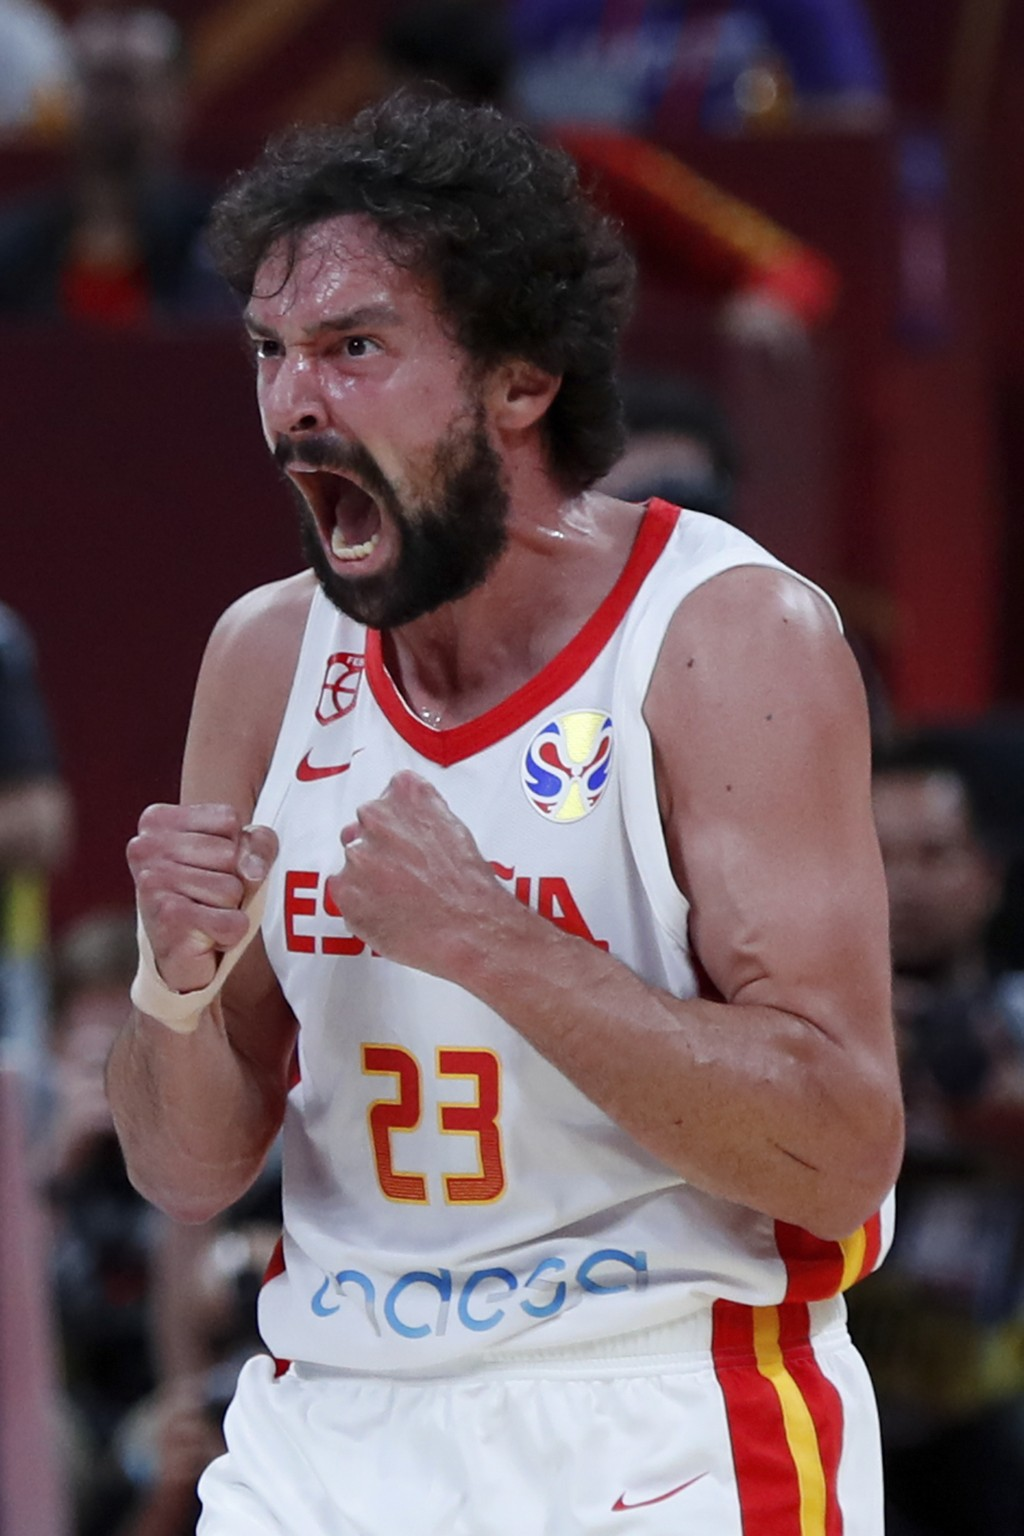 Sergio Llull of Spain reacts after scoring a three pointer against Australia during their semifinals match for the FIBA Basketball World Cup at the Ca